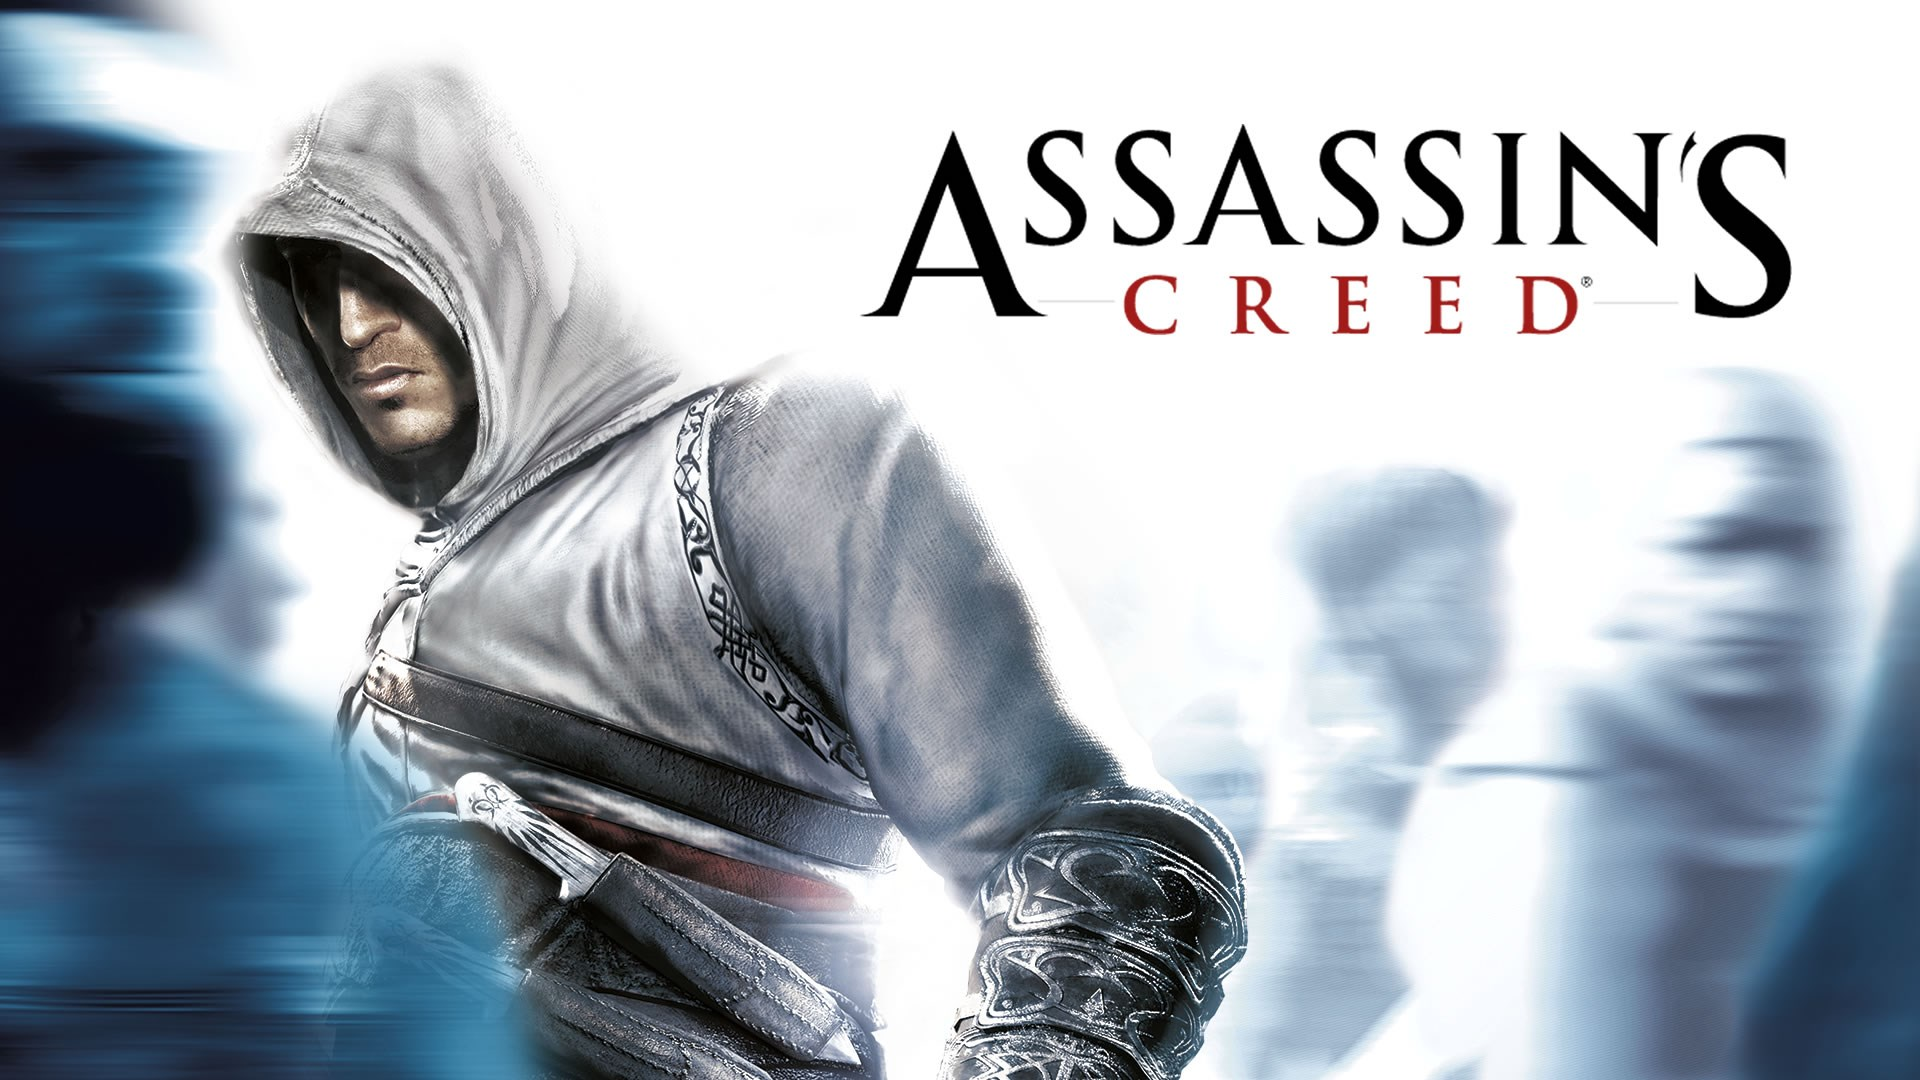 Assassin's Creed Ultimate list: the first chapter